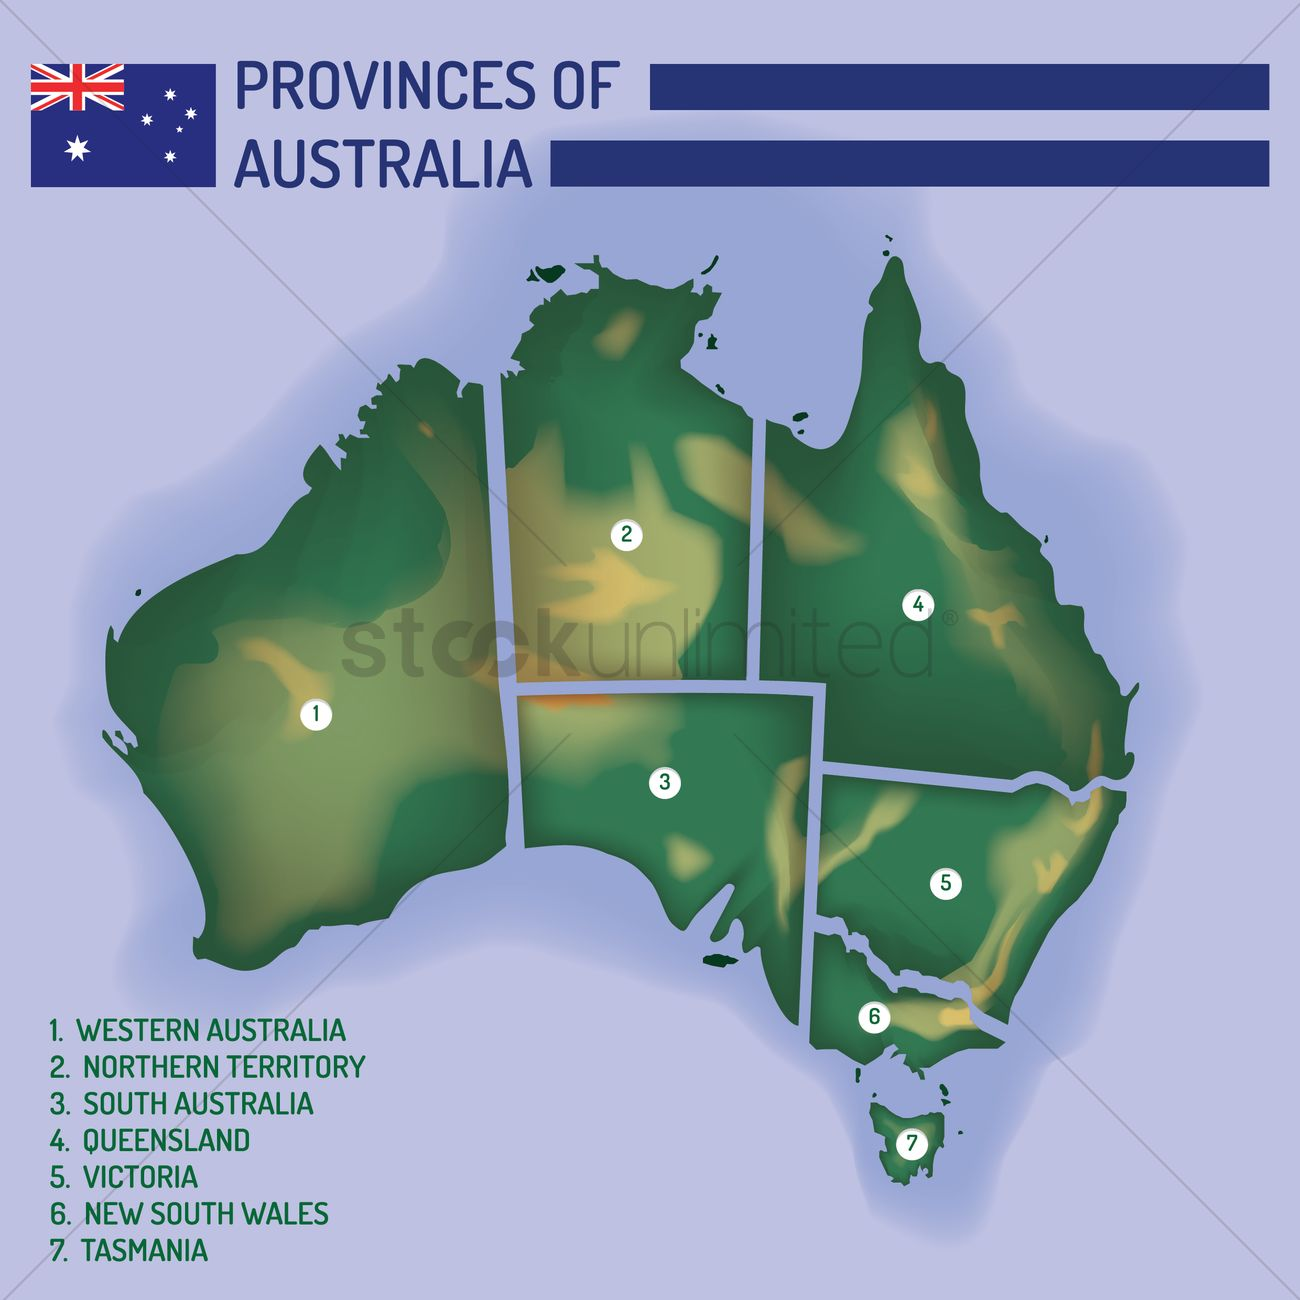 Australia Map Provinces.Province Of Australia On The Map Vector Image 1962173 Stockunlimited